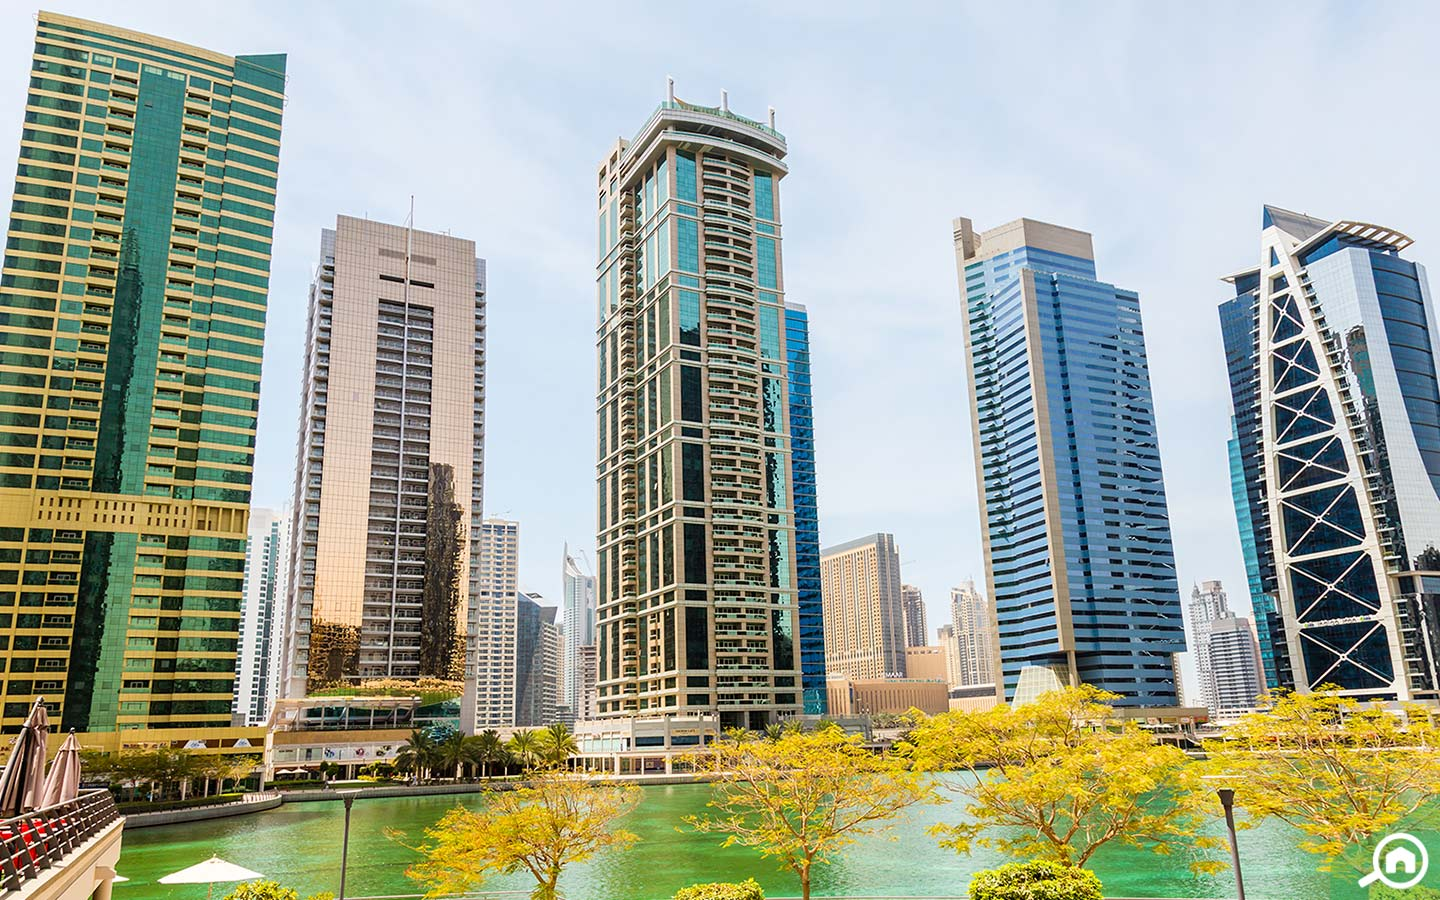 View of the residential towers and lakes in Jumeirah Lakes Towers